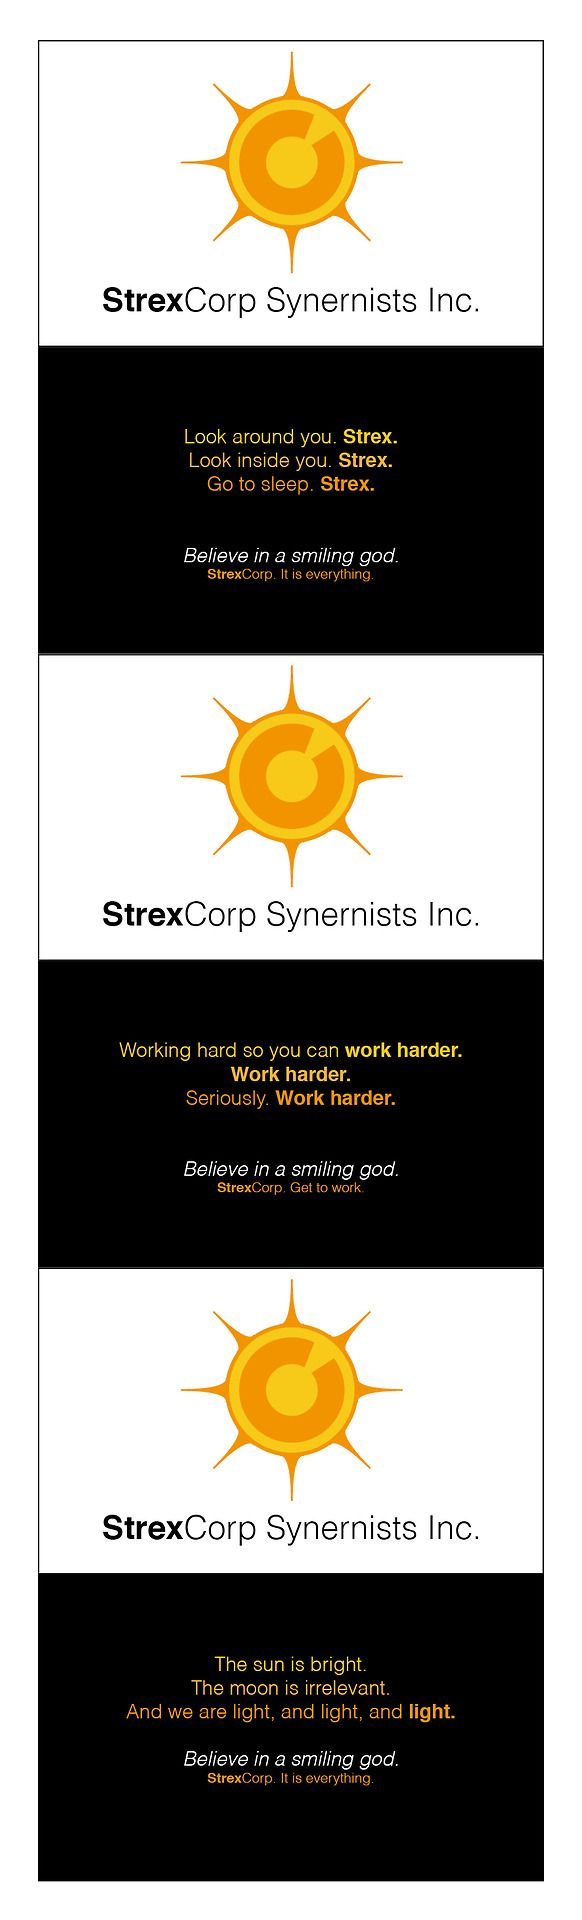 the strexcorp business cards i made for dragon*con.